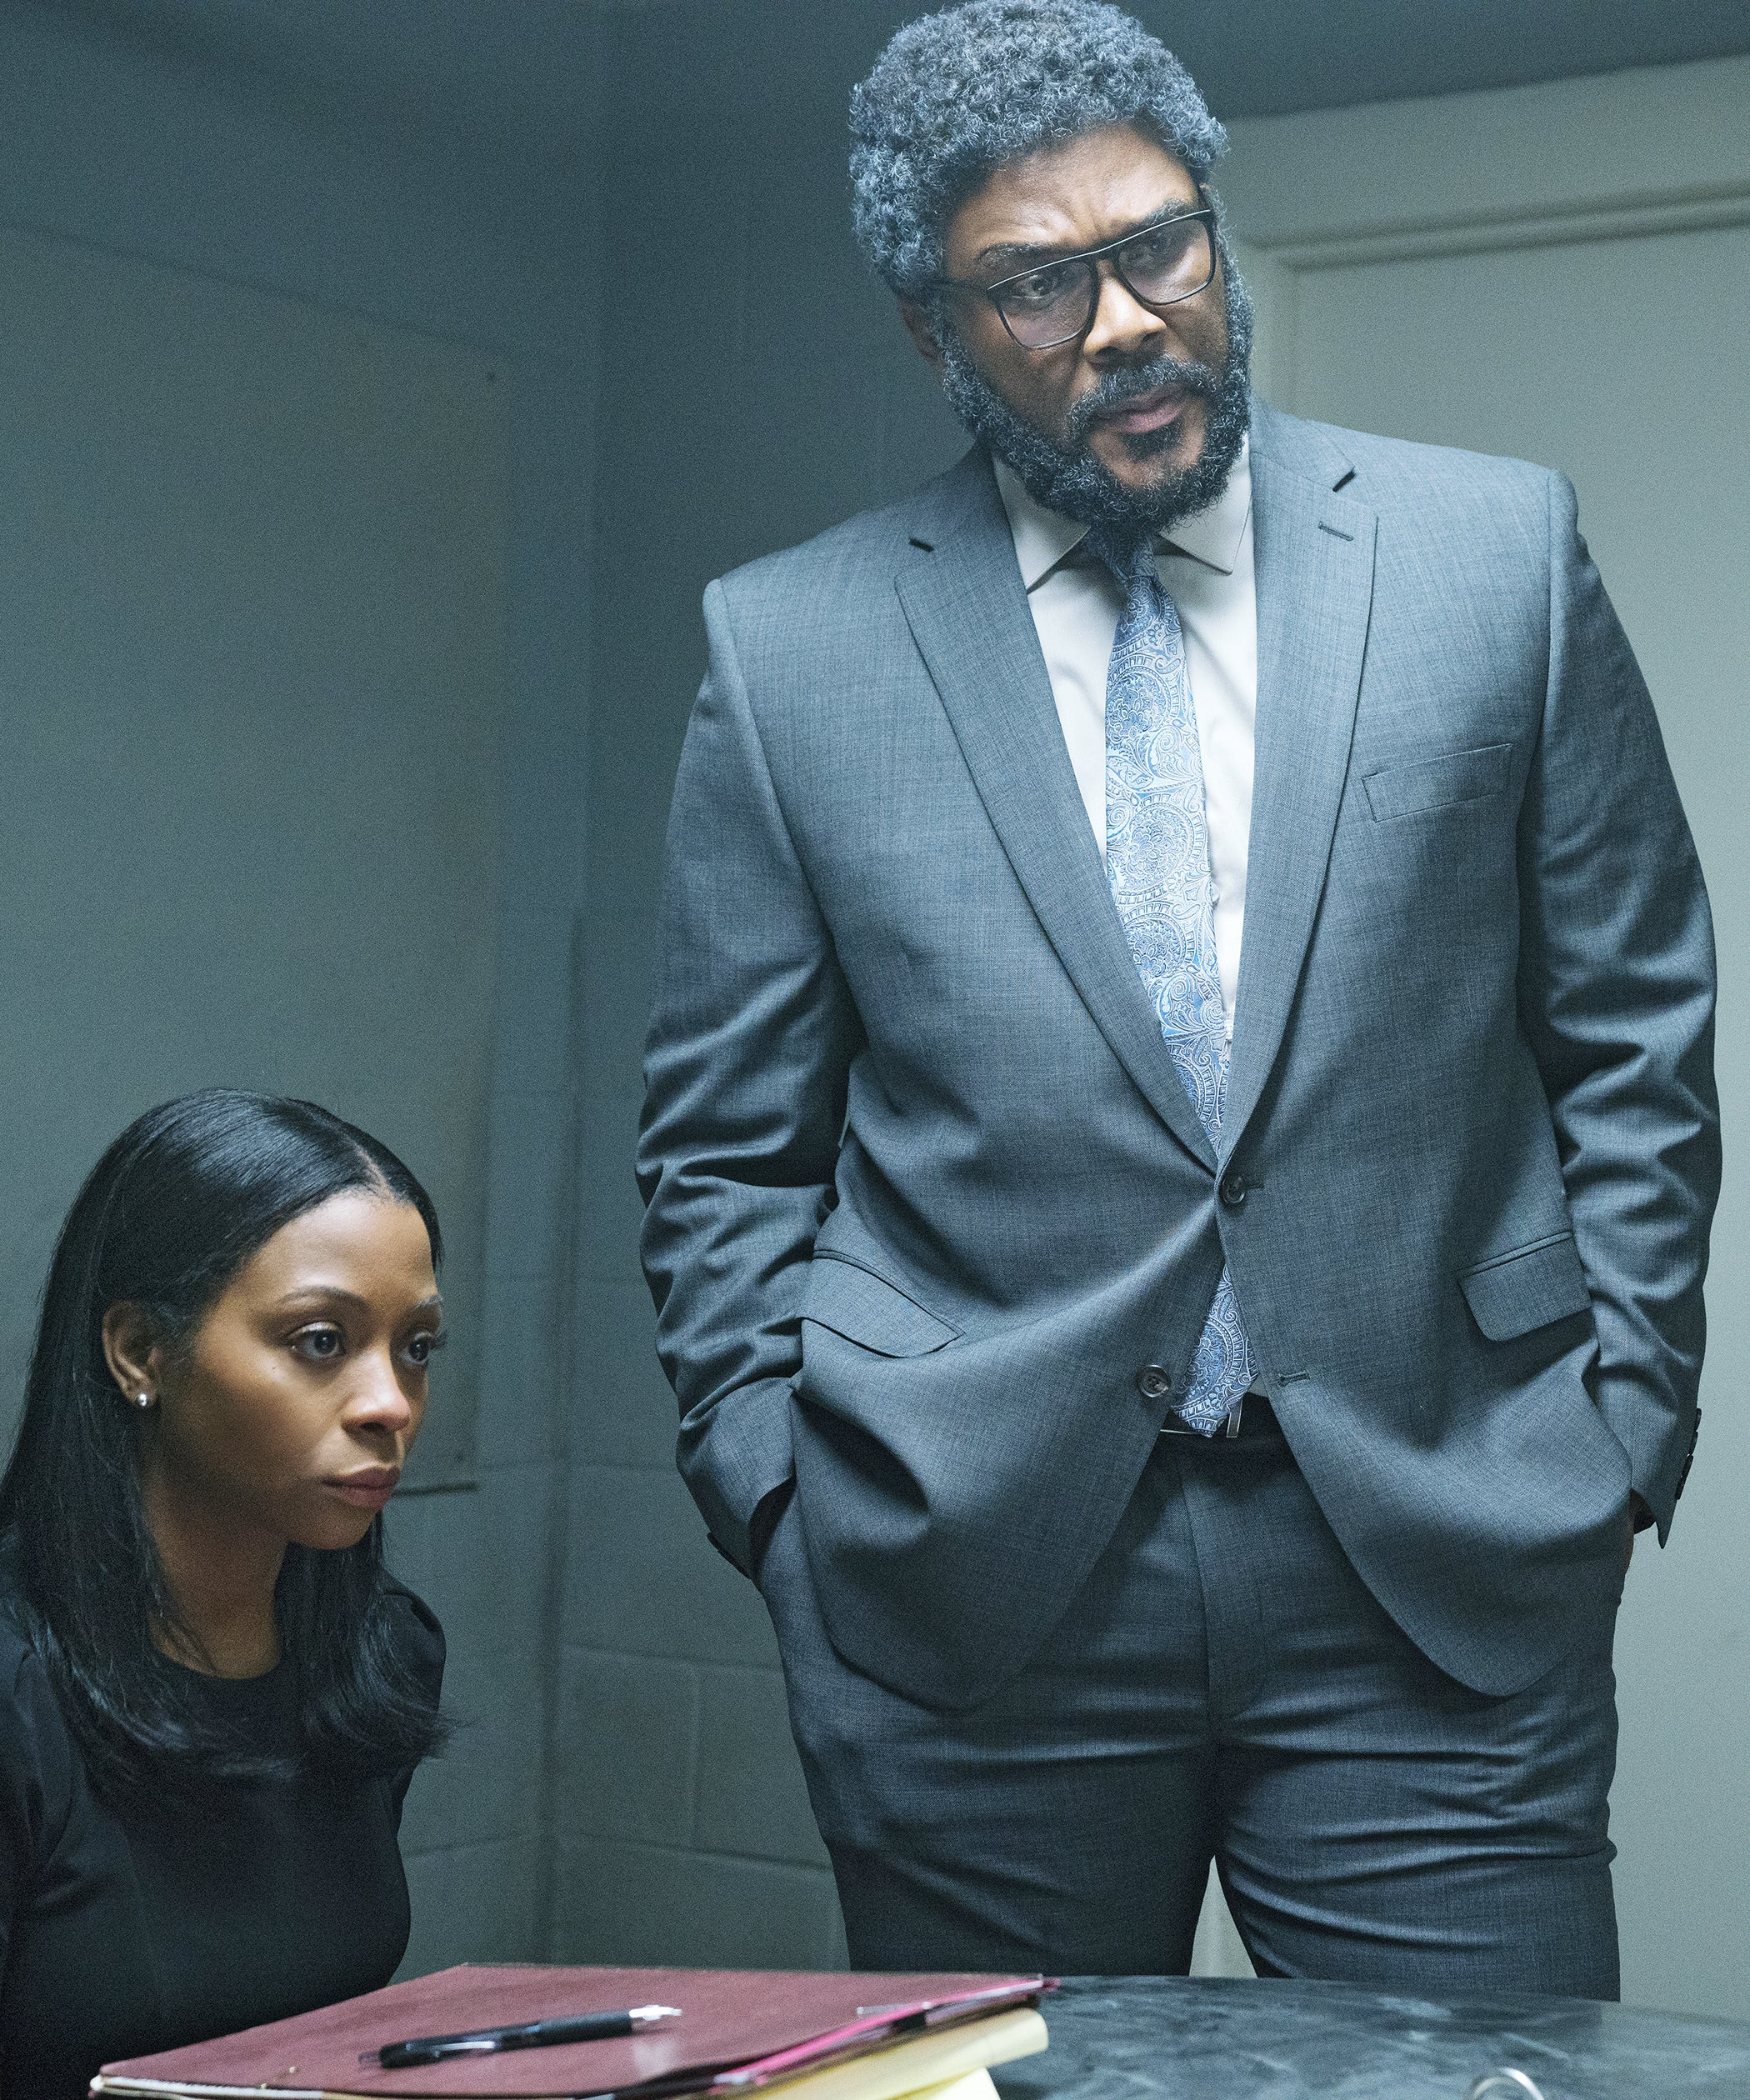 Tyler Perry Knows Exactly What He's Doing With His Films